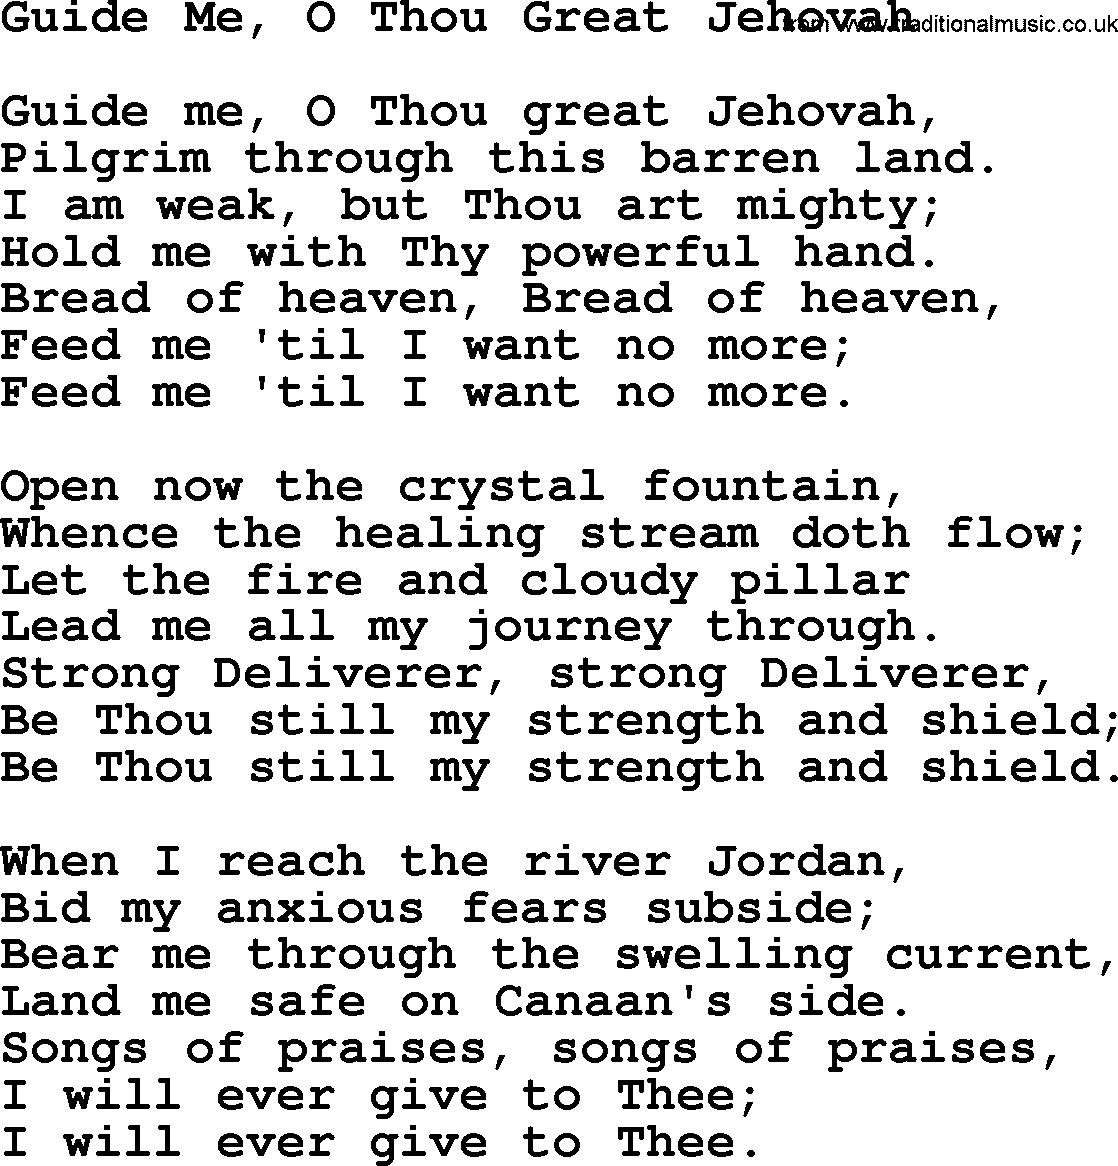 Baptist Hymnal, Christian Song: Guide Me, O Thou Great